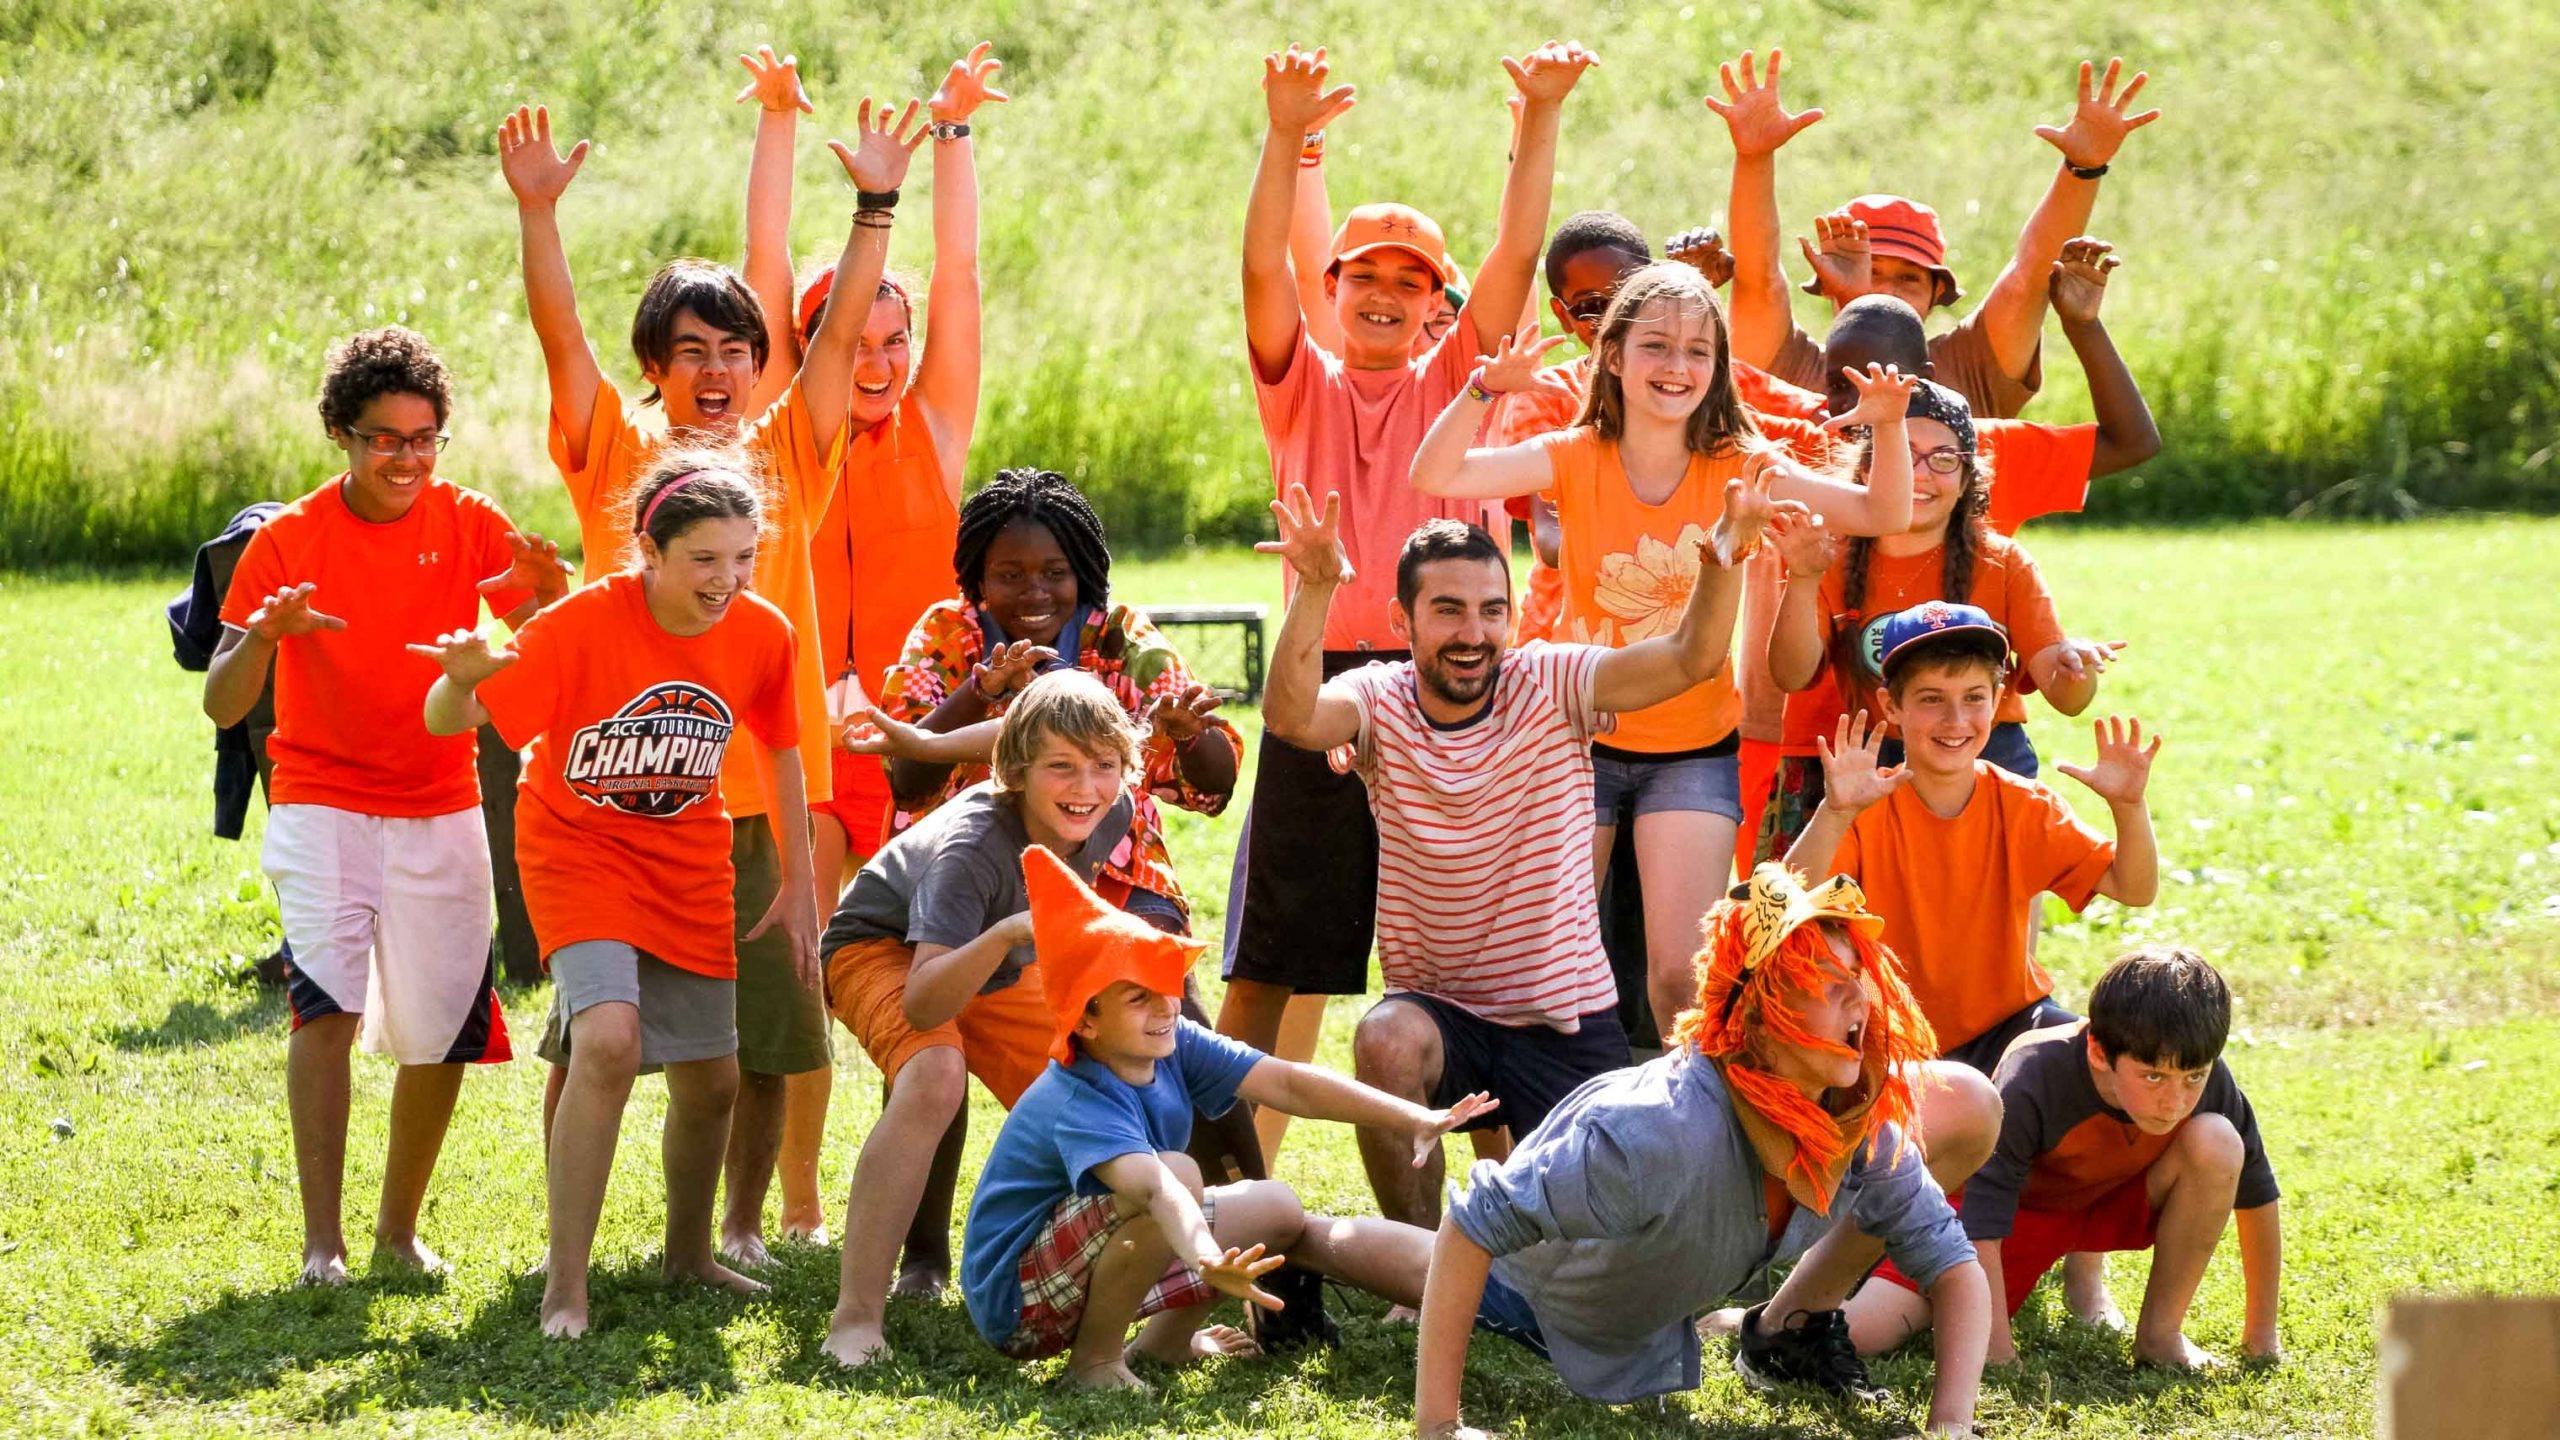 A group of campers posing wearing orange with their hands up.